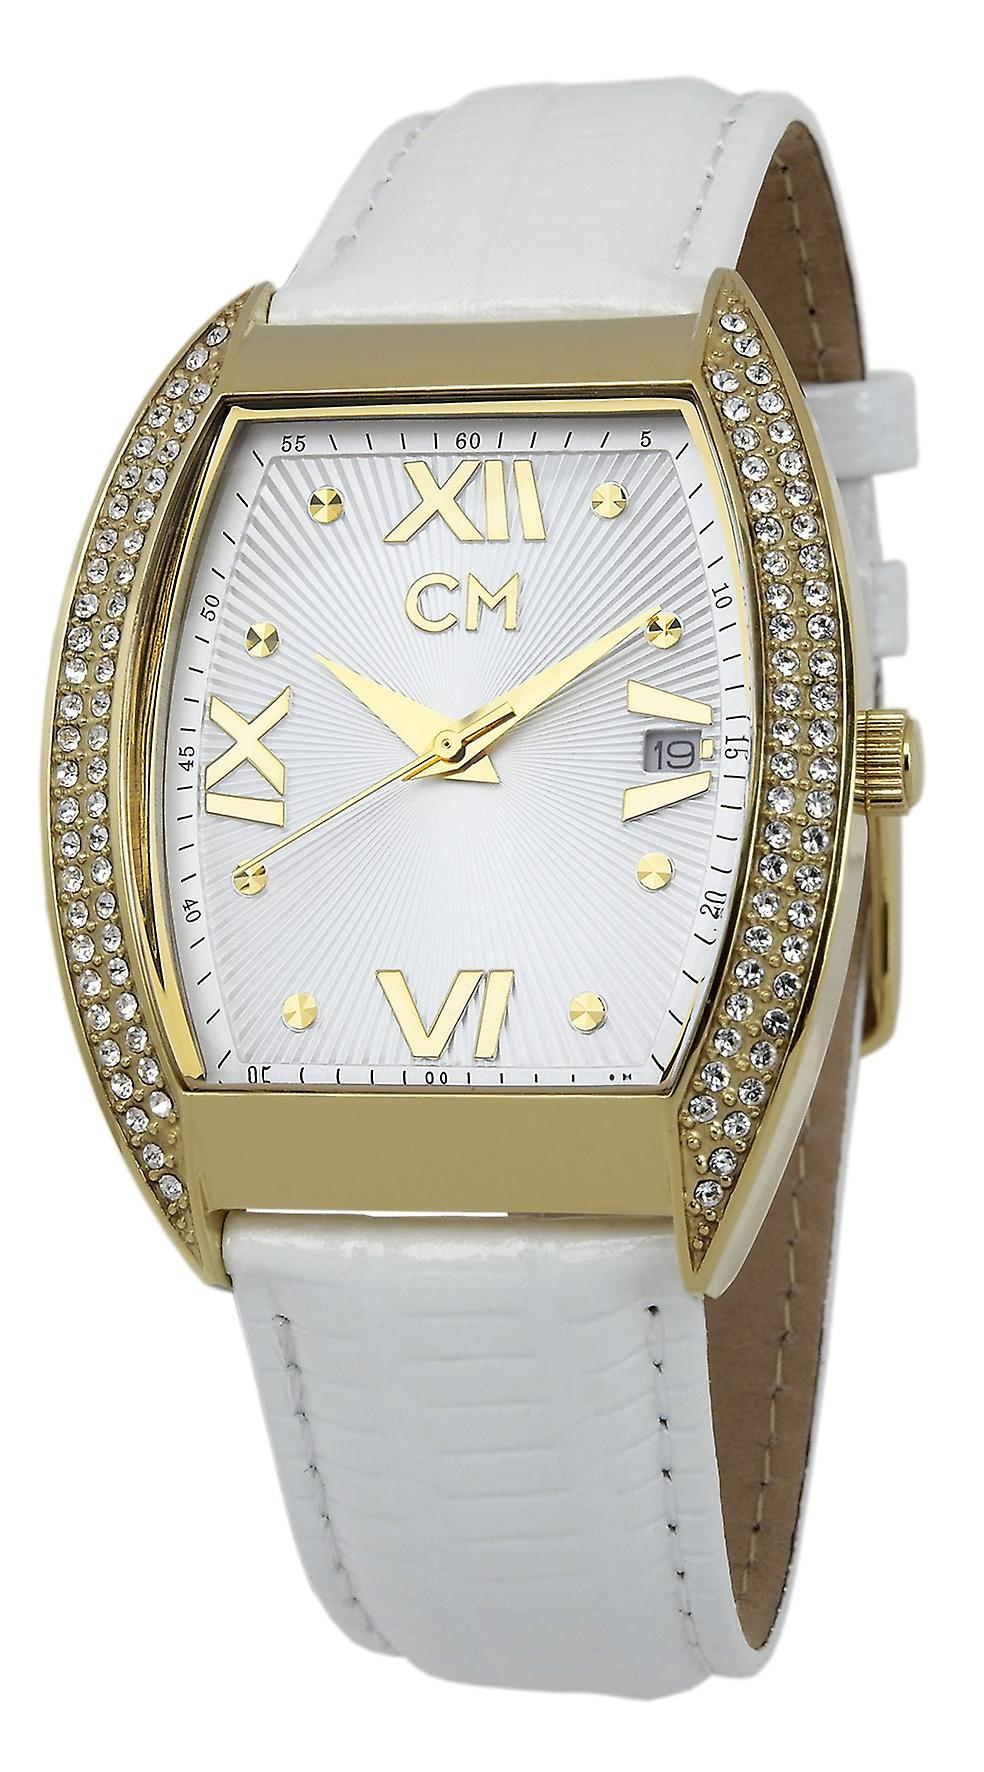 Carlo Monti Ladies Quartz Watch Brescia CM508-286